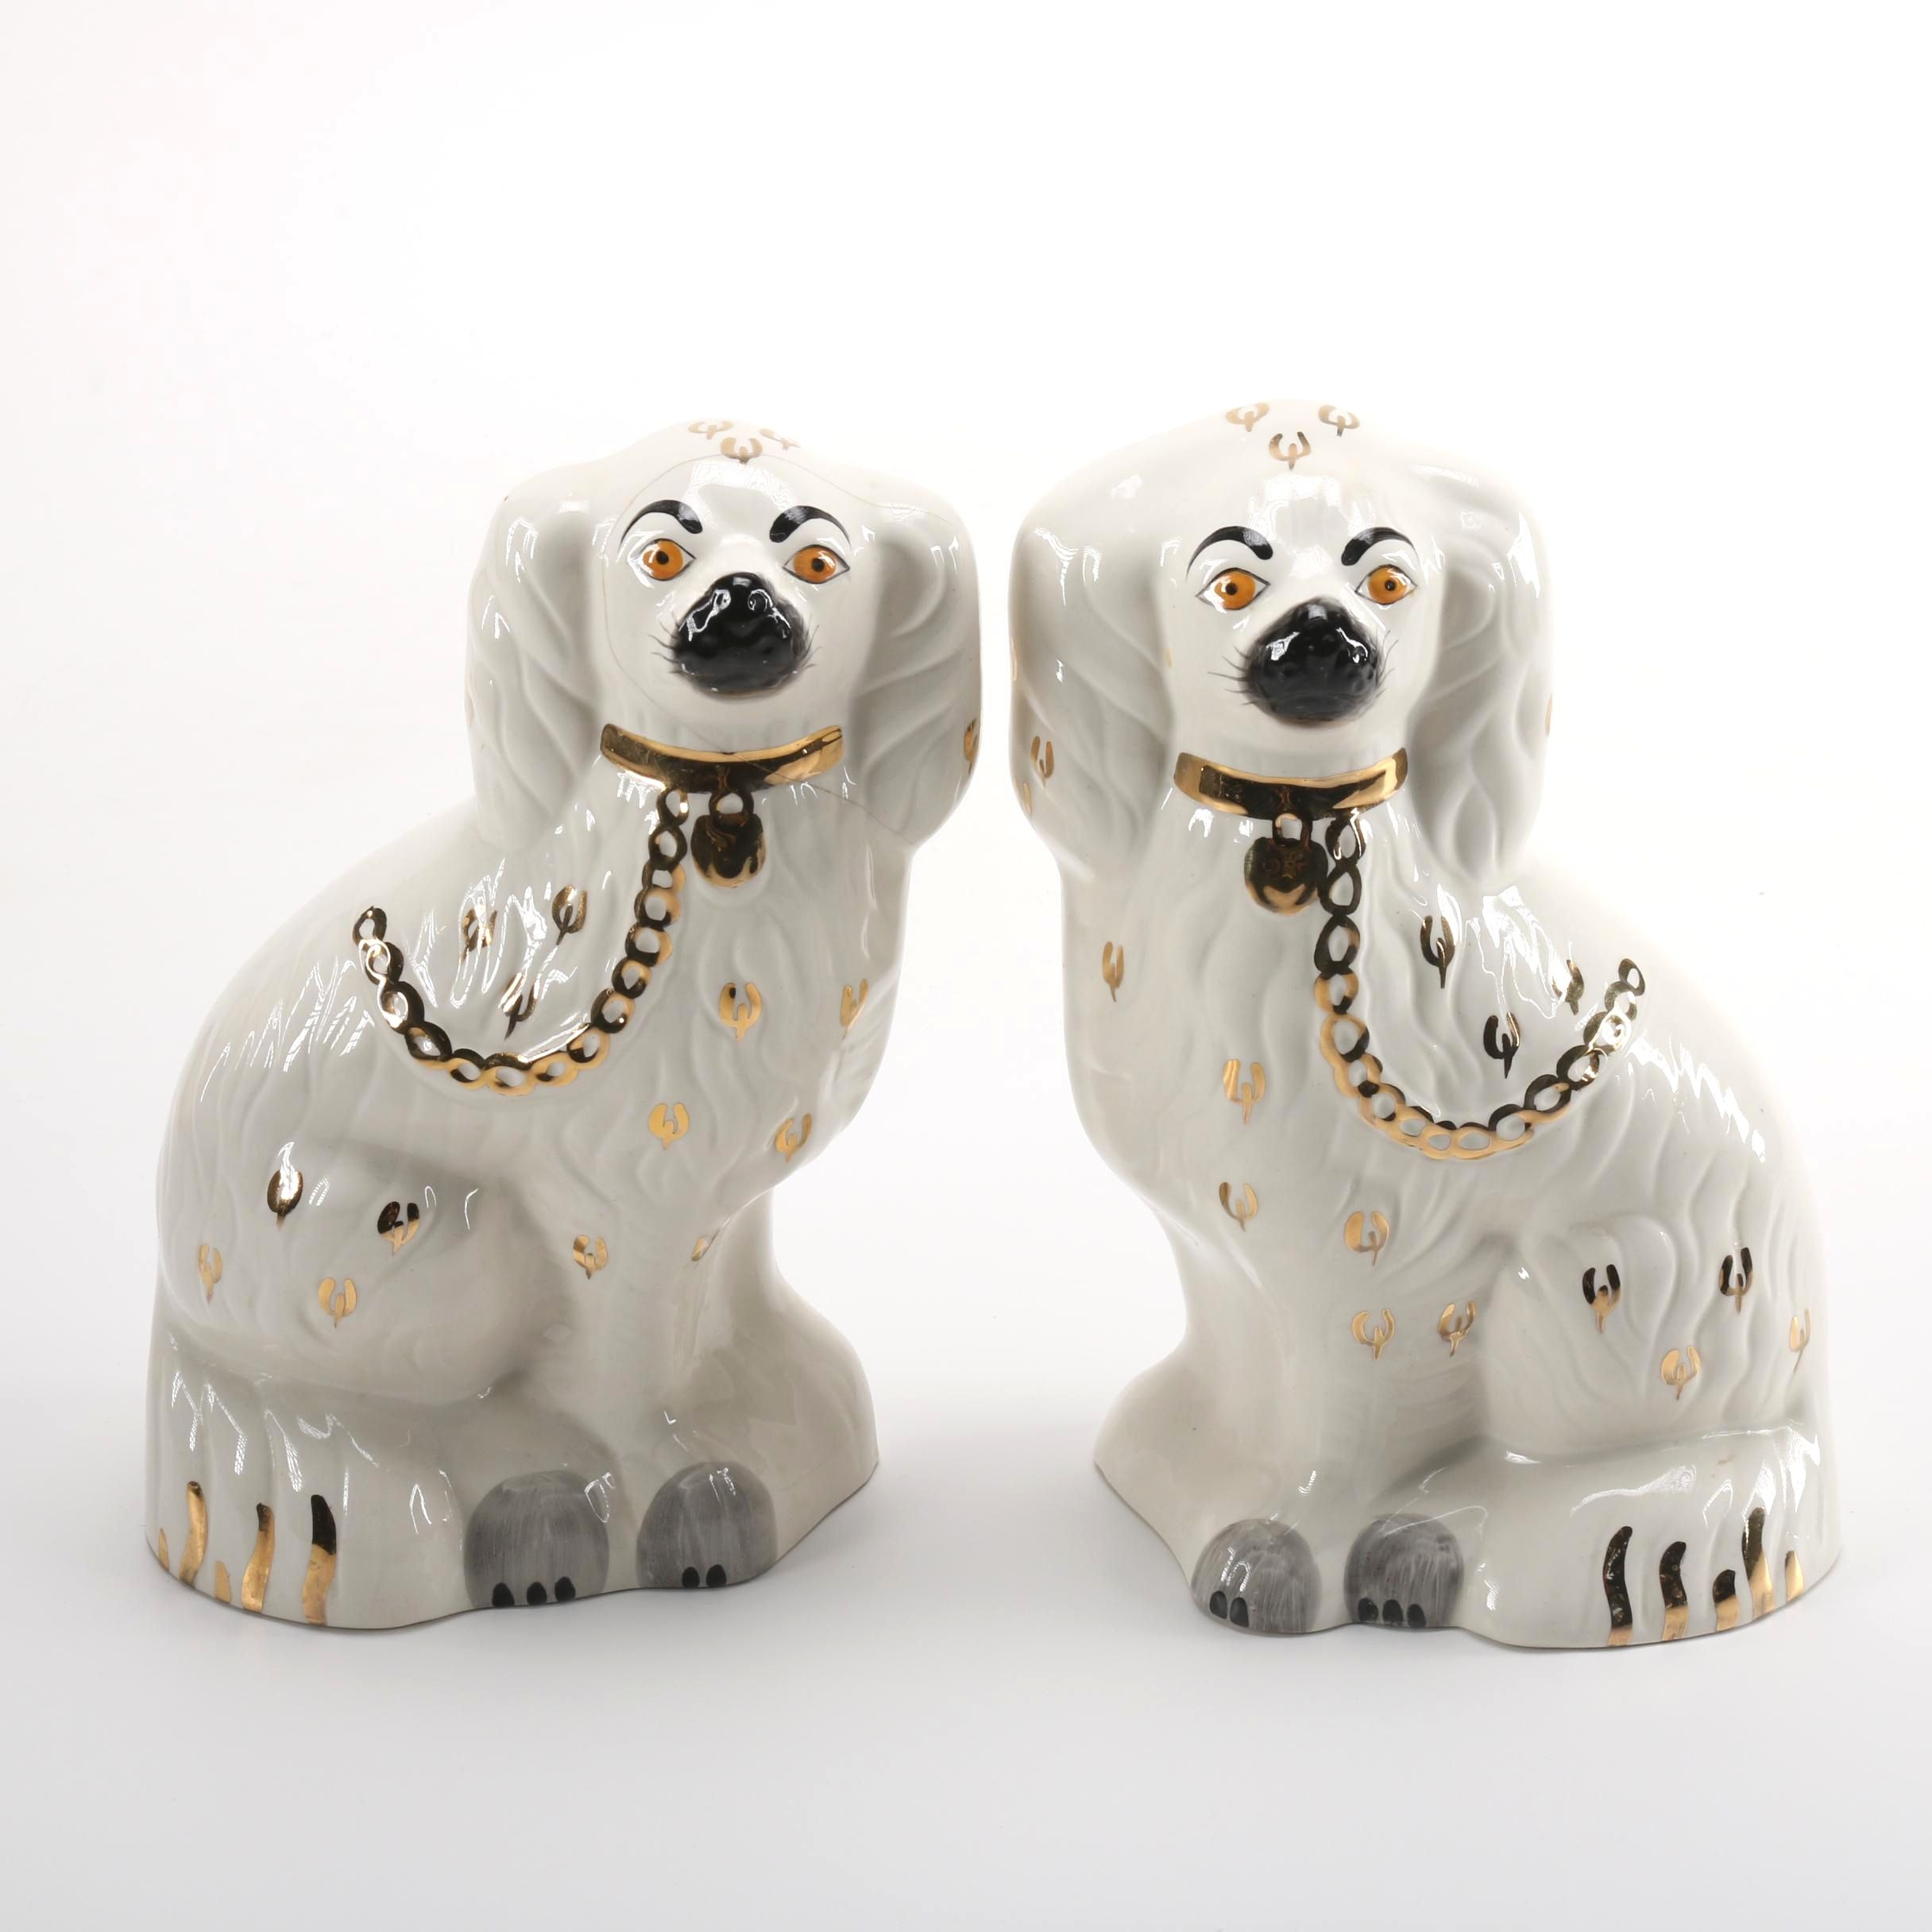 Pair of Beswick Porcelain Dog Figurines